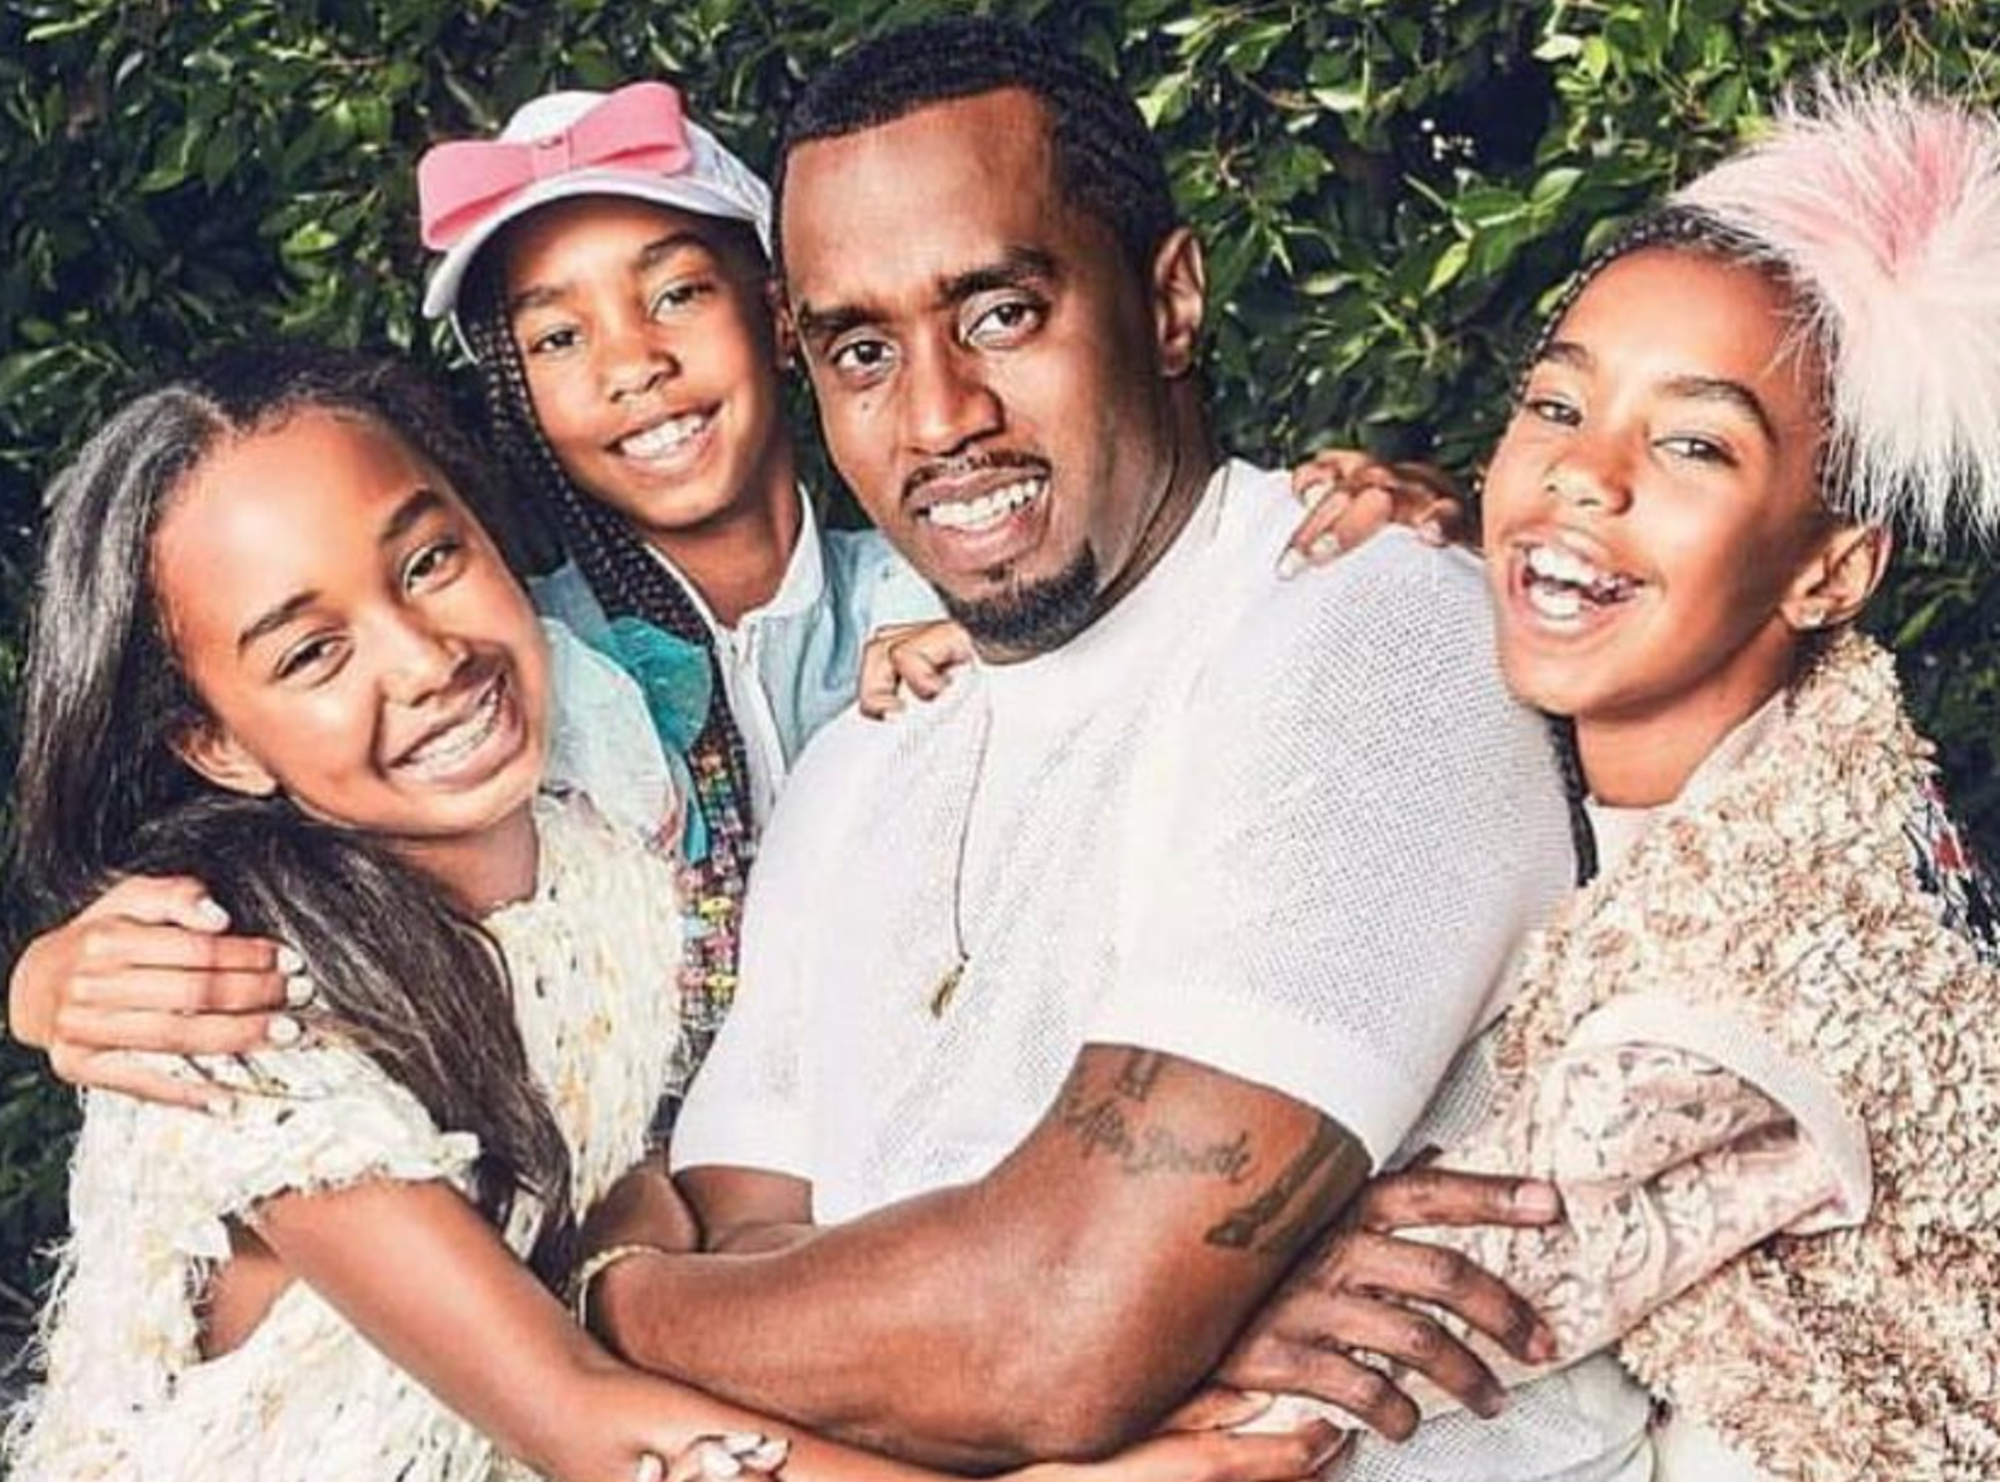 diddy-is-teaching-his-daughter-chance-some-dance-moves-fans-are-impressed-by-this-father-daughter-moment-following-diddys-recent-breakdown